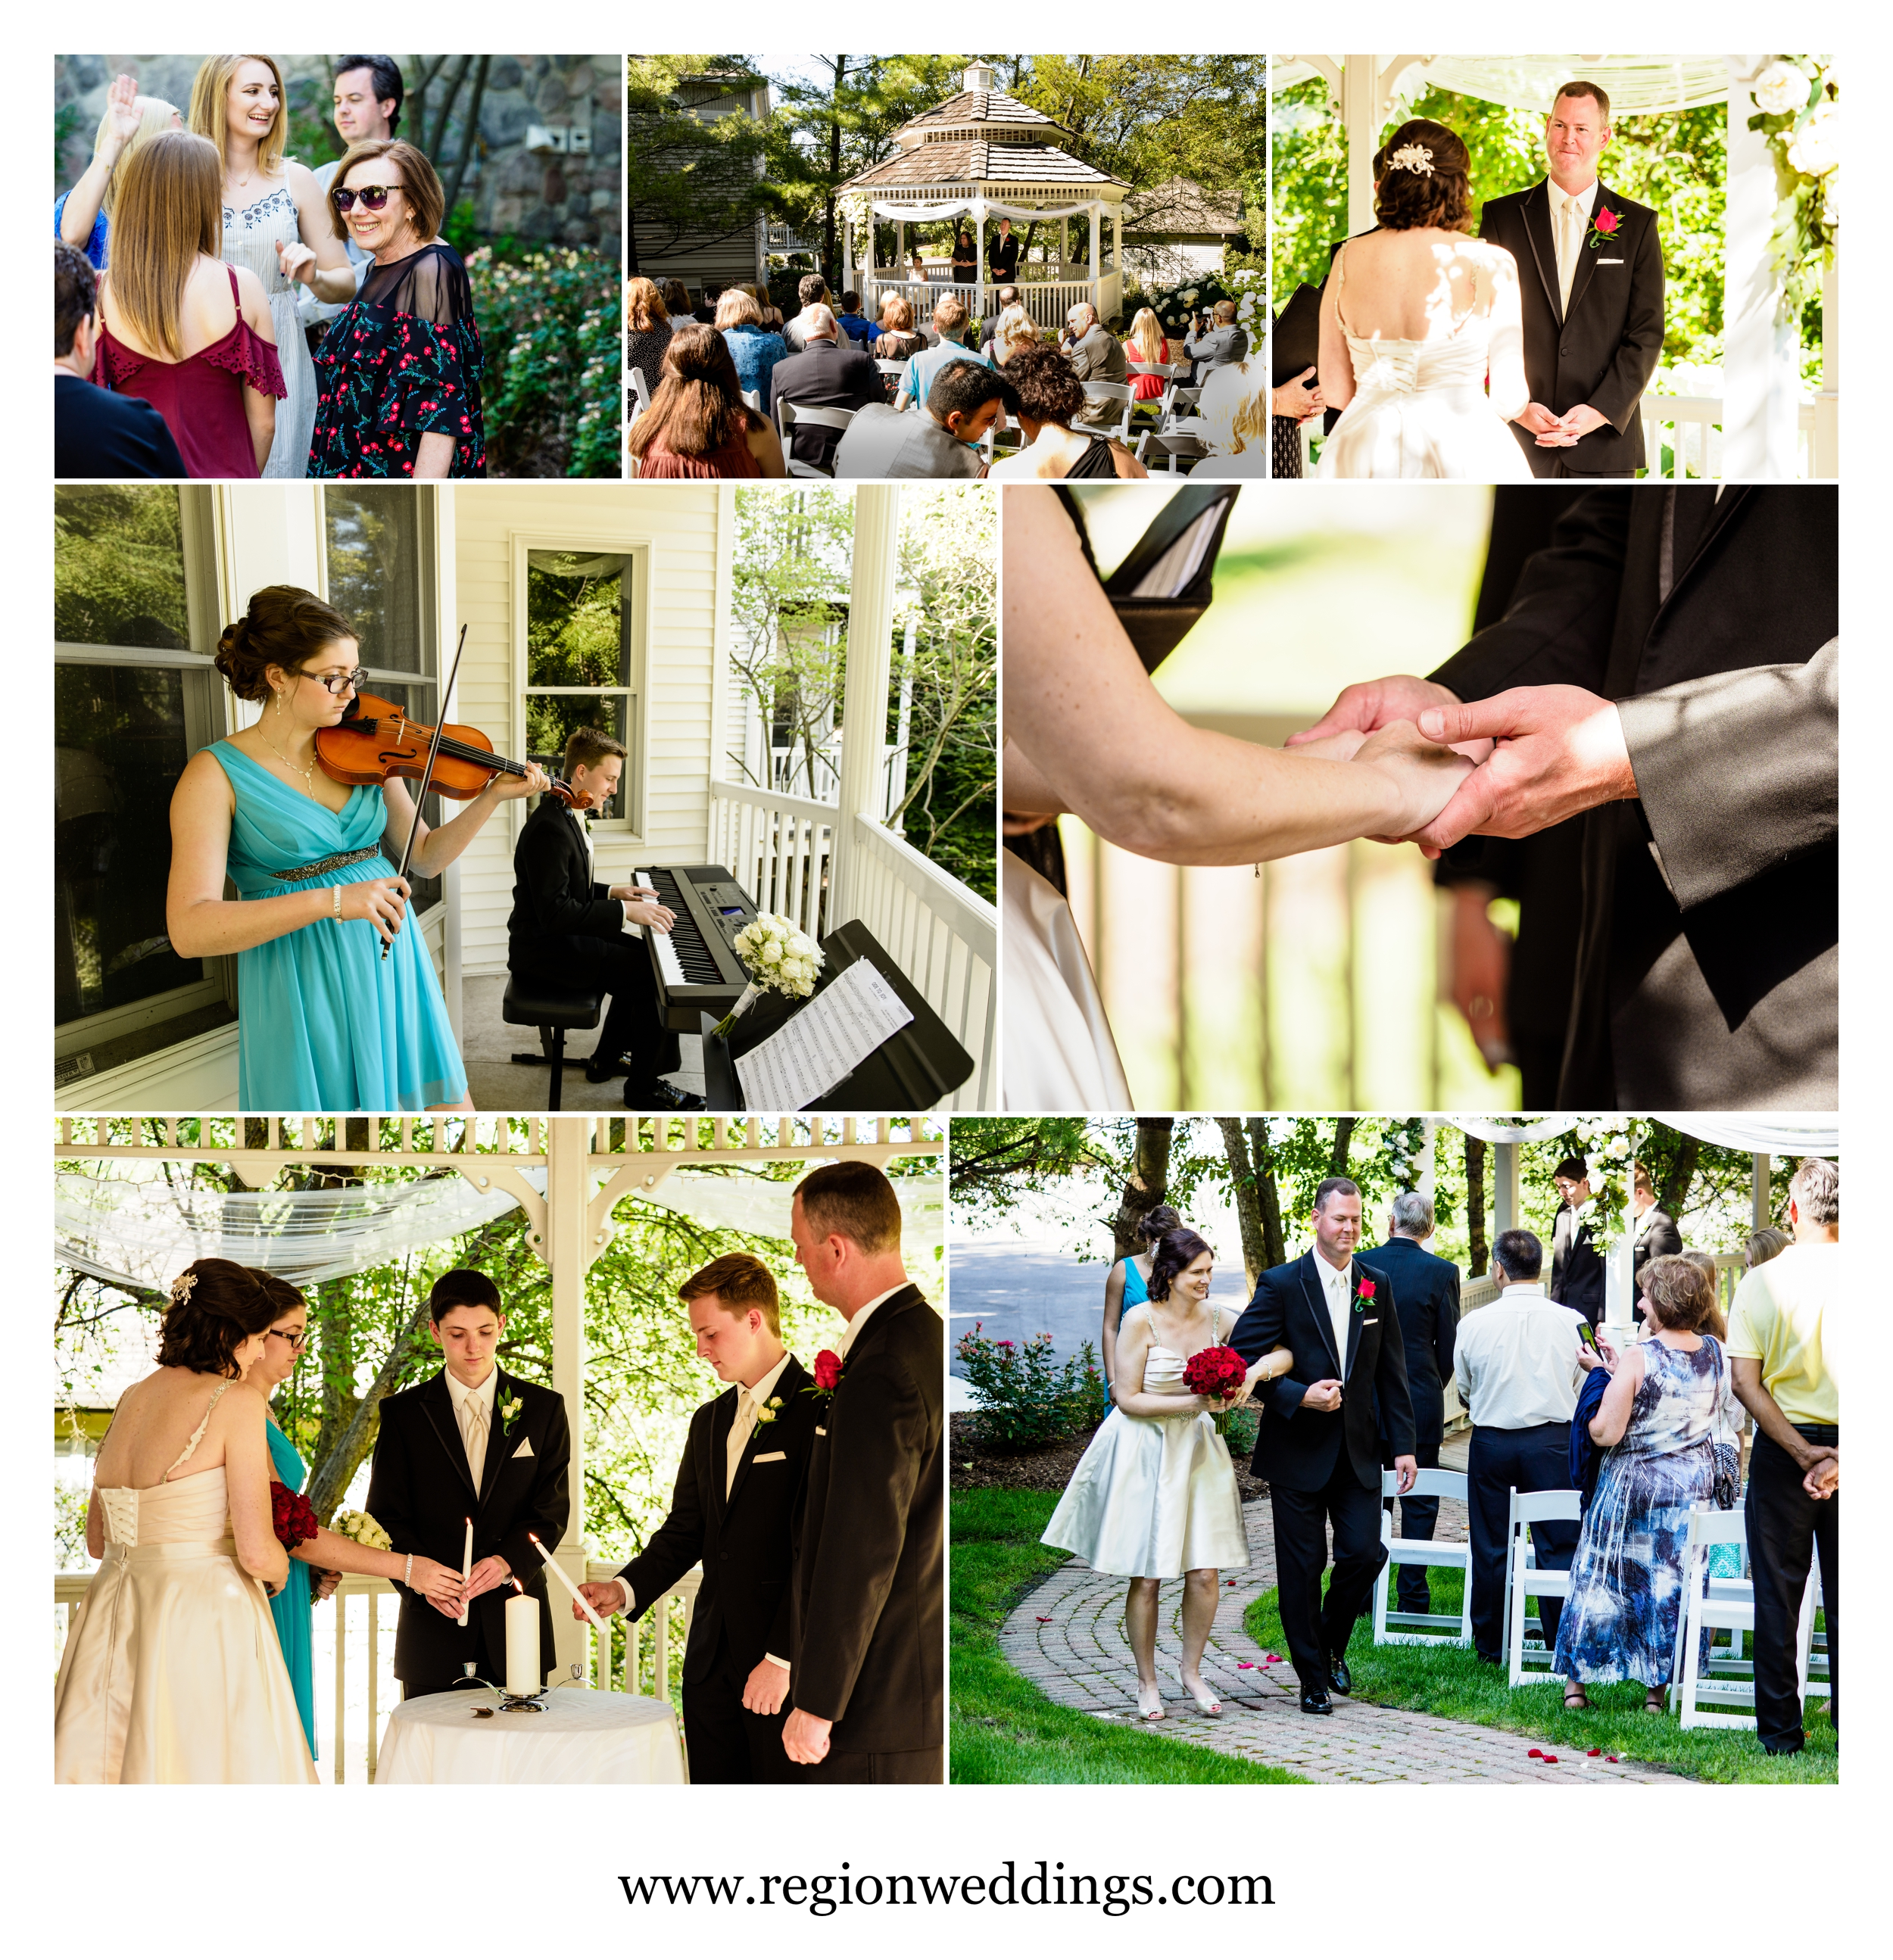 Outdoor wedding ceremony at The Inn At Aberdeen in Valparaiso, Indiana.